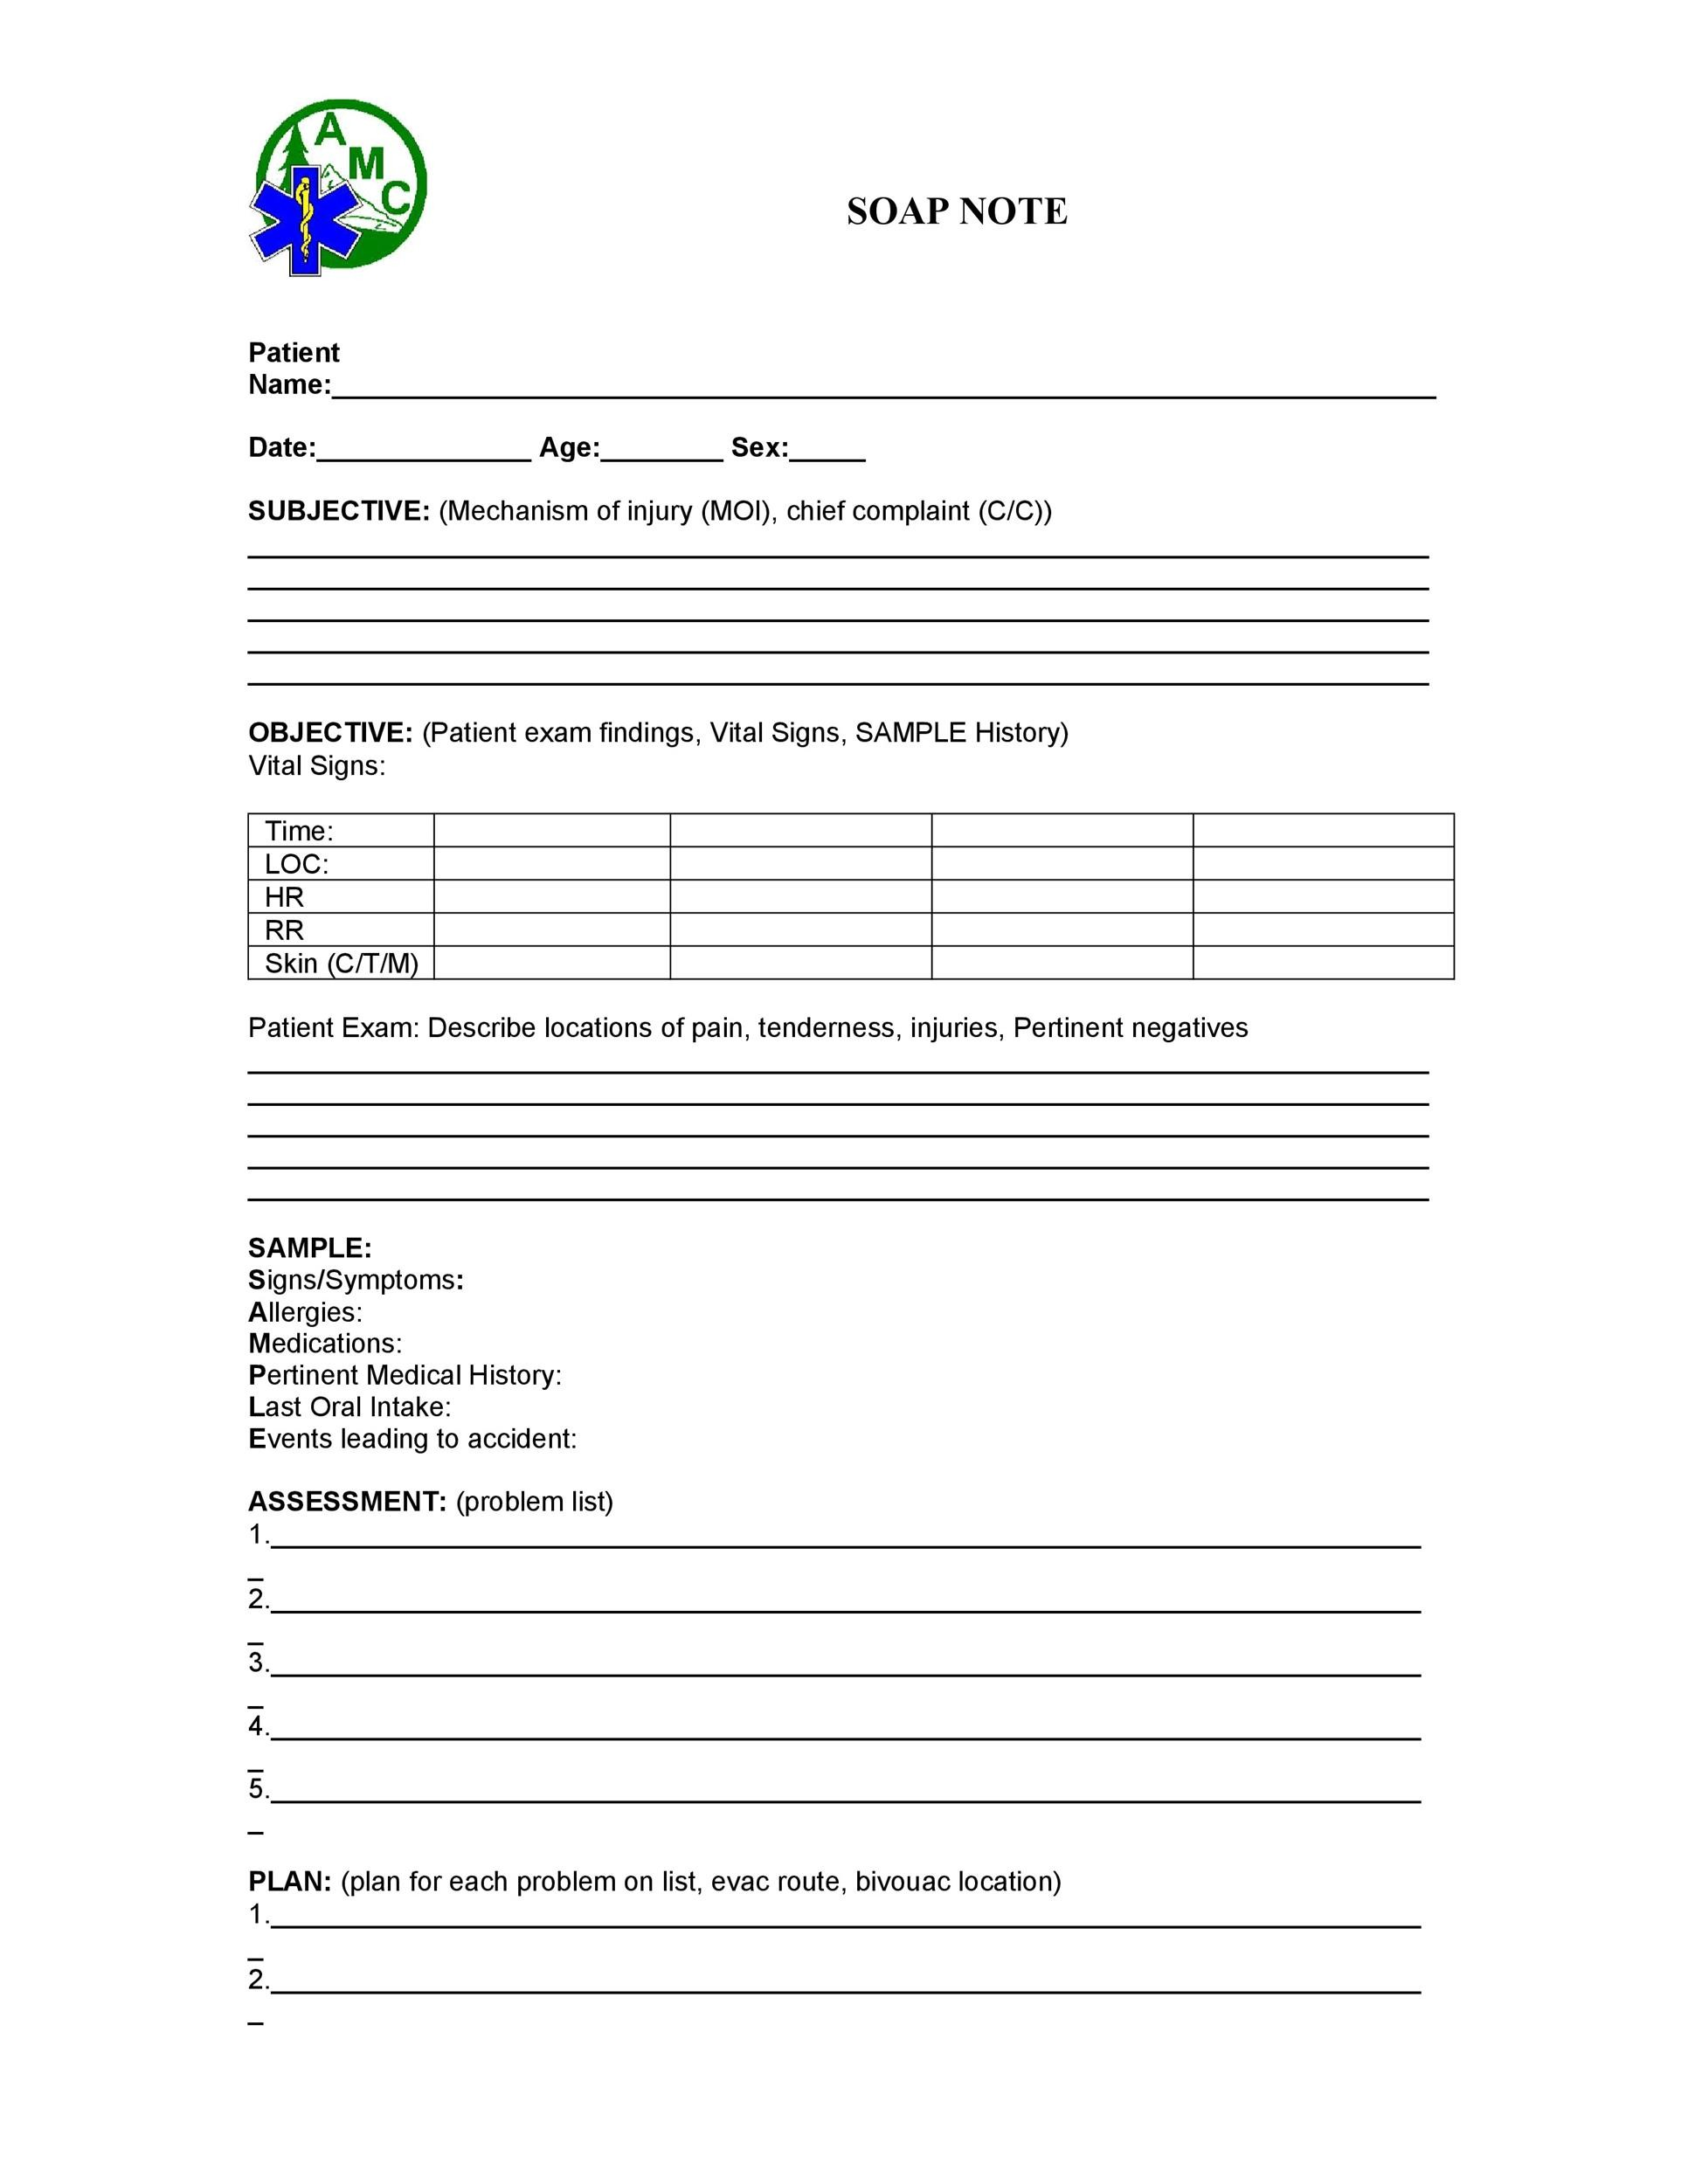 Free Soap Note Template 25